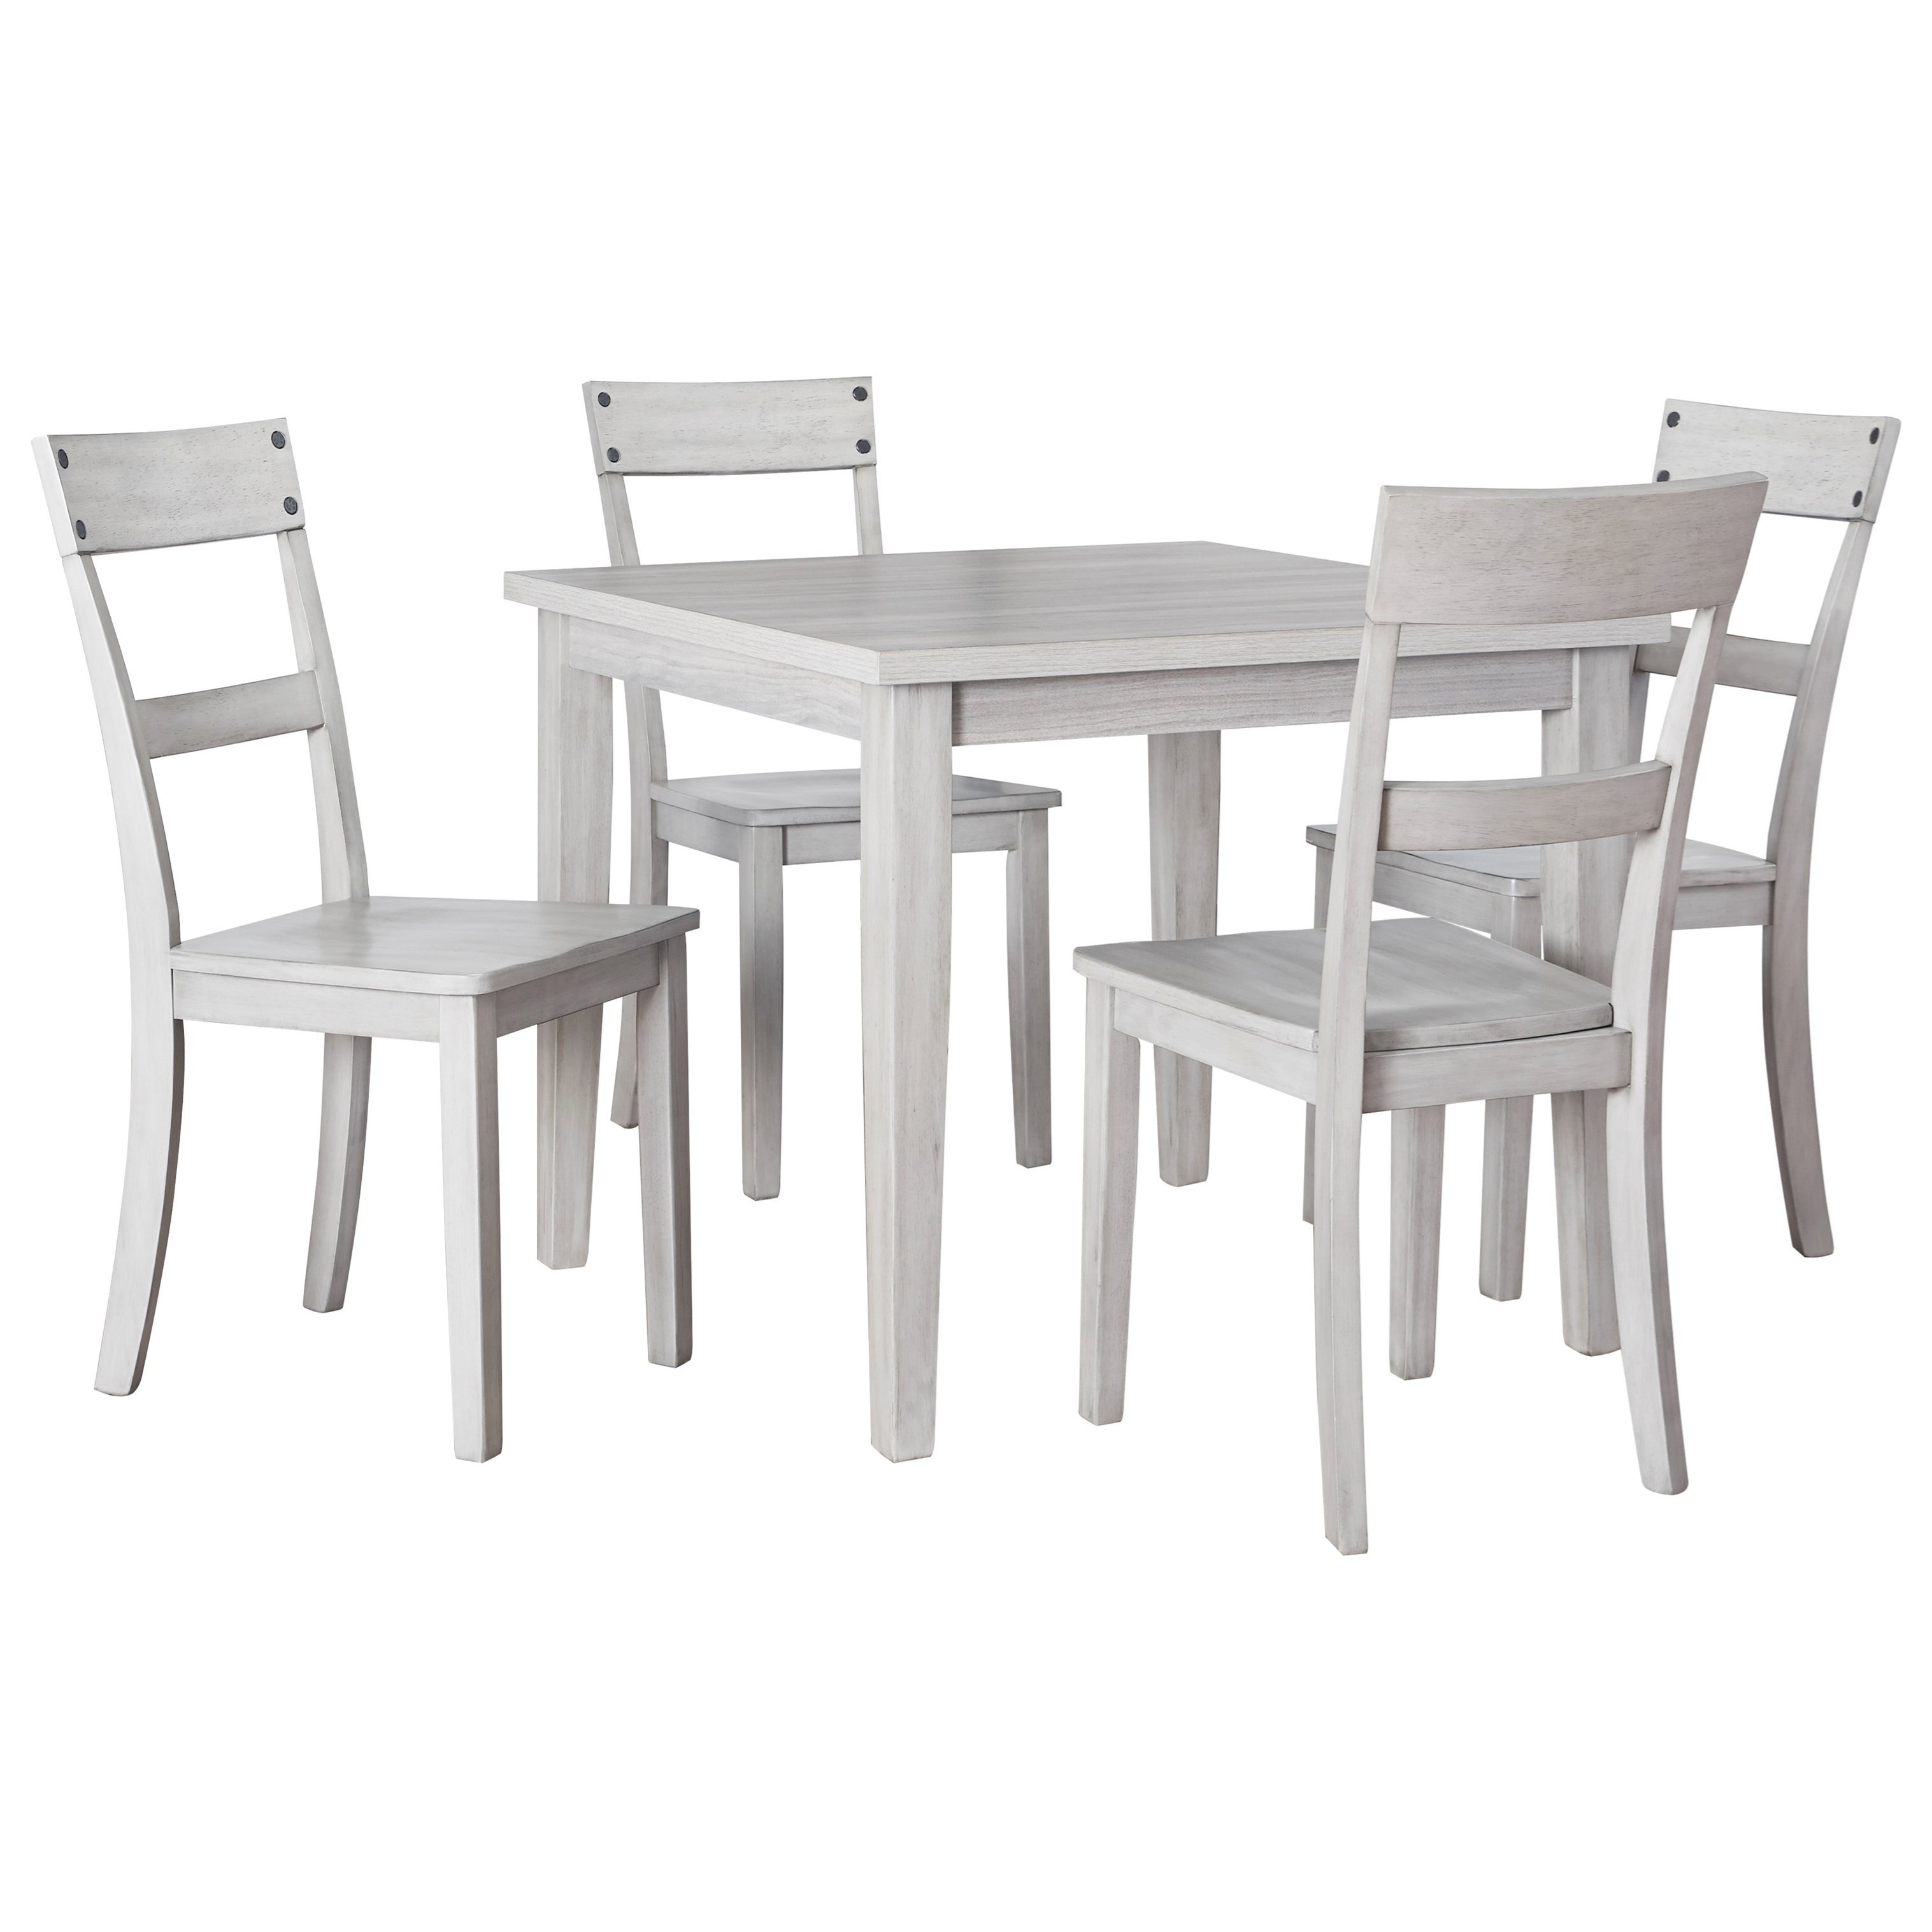 Loratti Loratti Square Dining Table Set by Ashley at Morris Home